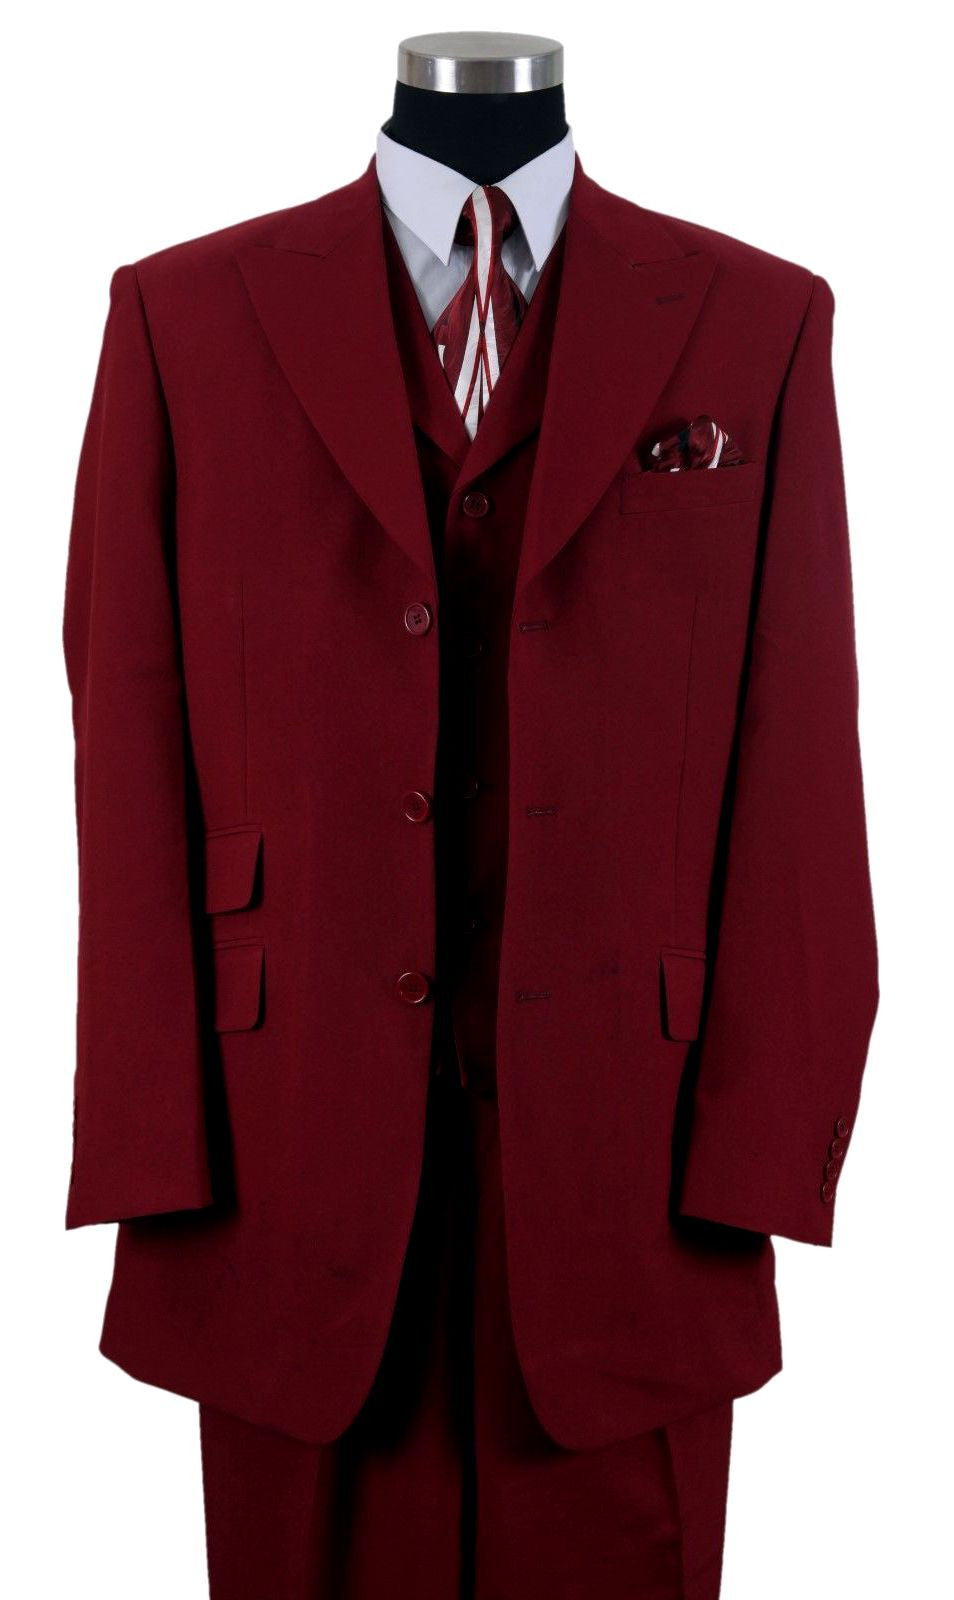 official photos de73a d159f Milano Moda Suit 905V-Burgundy